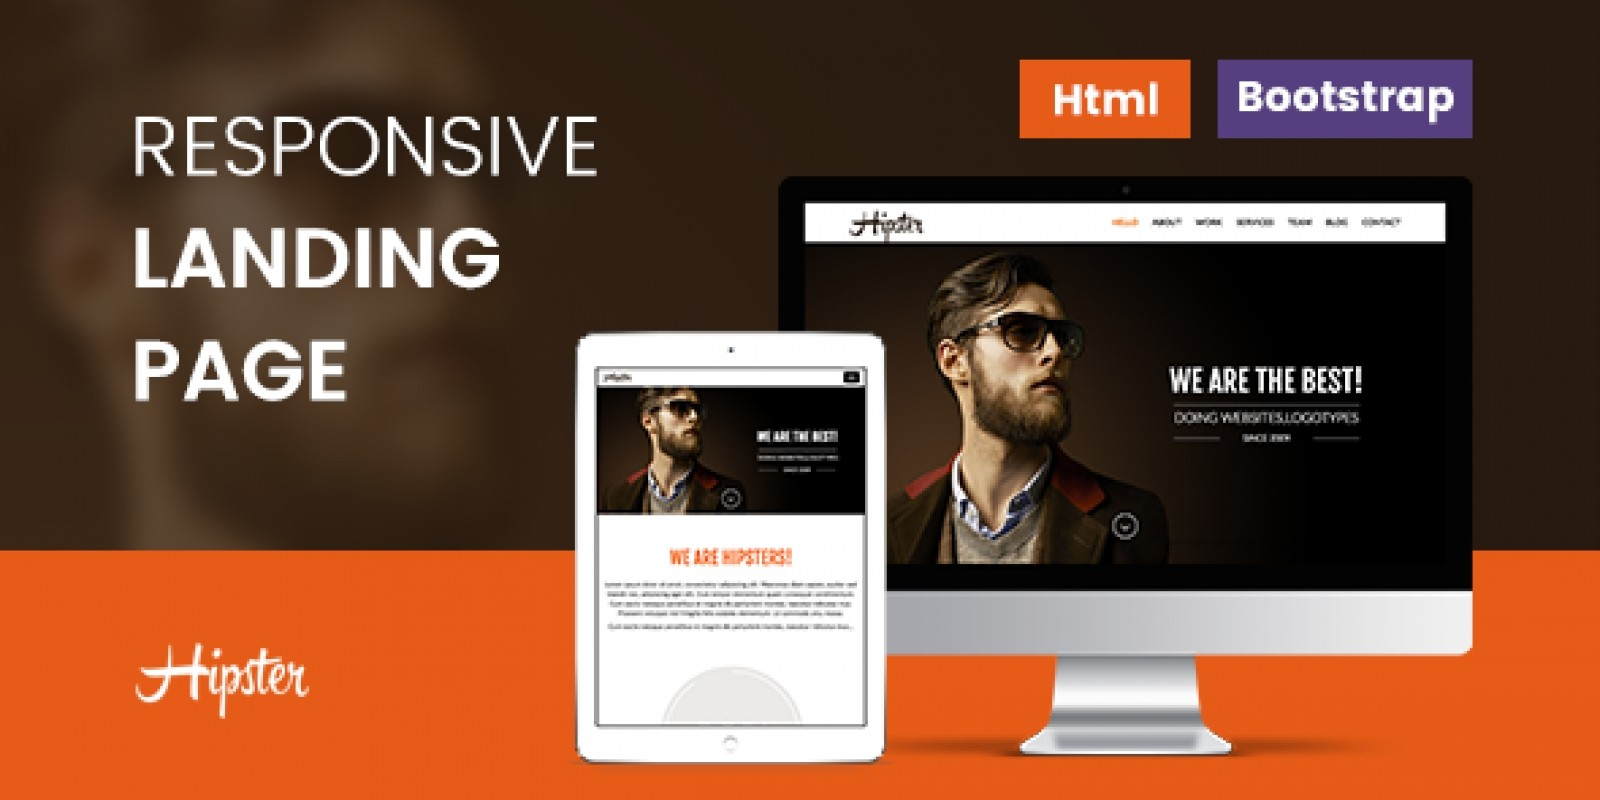 Hipster - Responsive HTML Landing Page